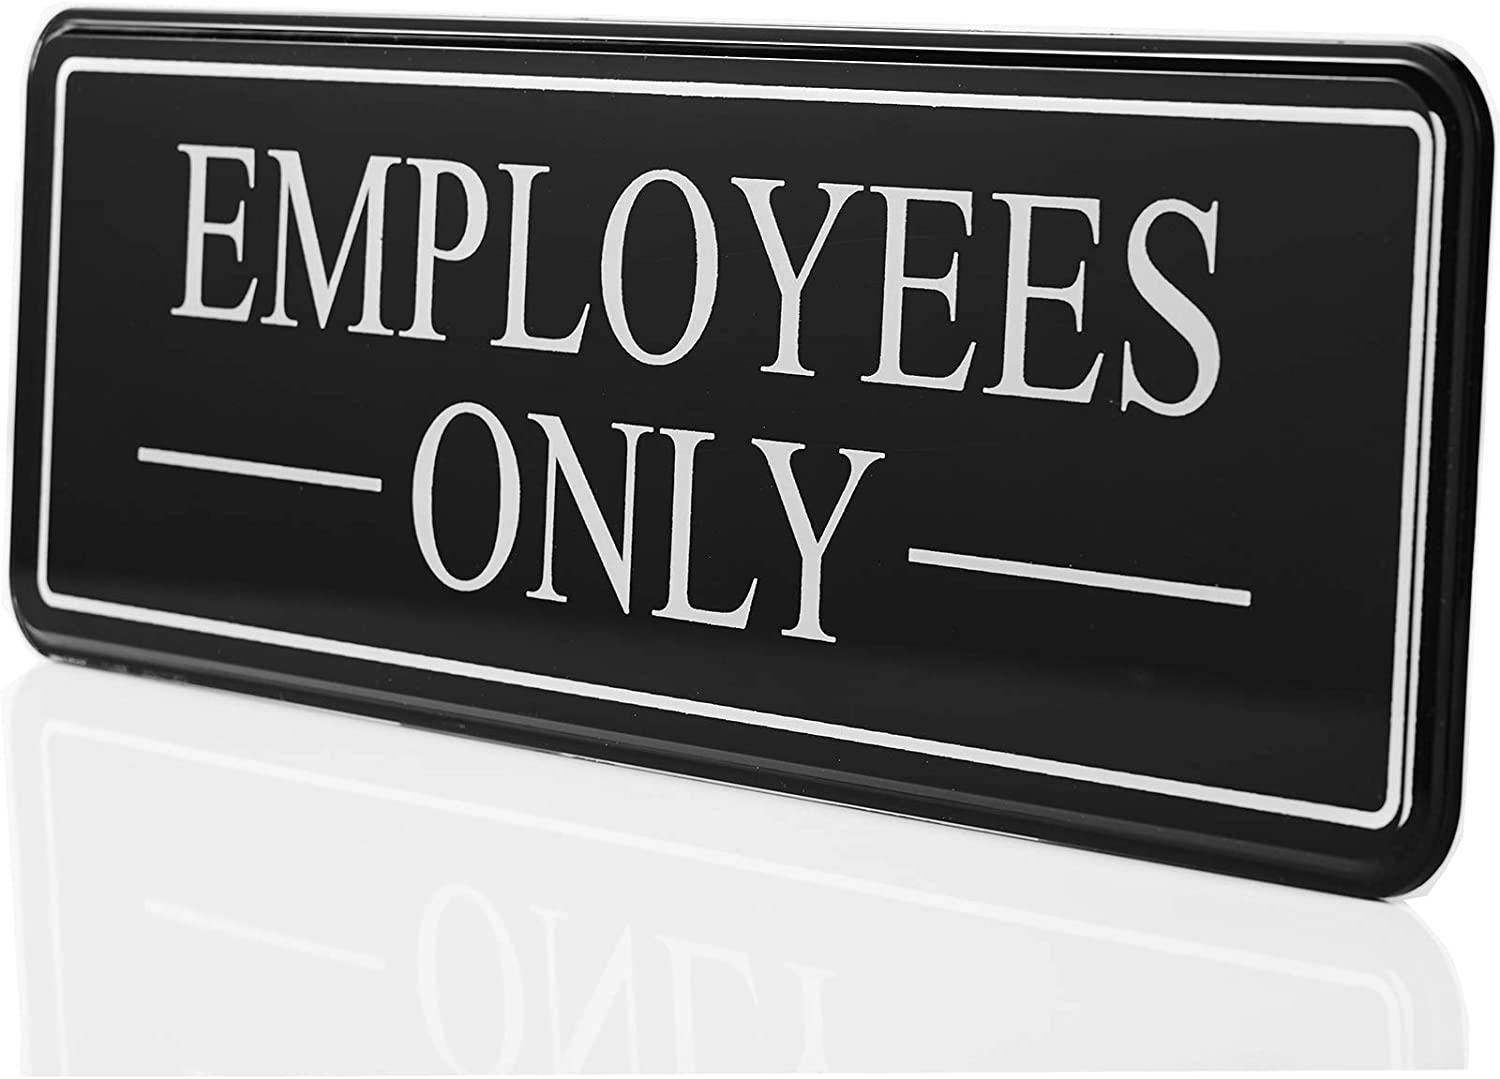 "Bebarley Employees Only Sign for Office Door Wall Home and Business,Premium Durable and Bright Acrylic Design 9""x3"" Sign with Double Sided 3M self-Adhesive Tape"